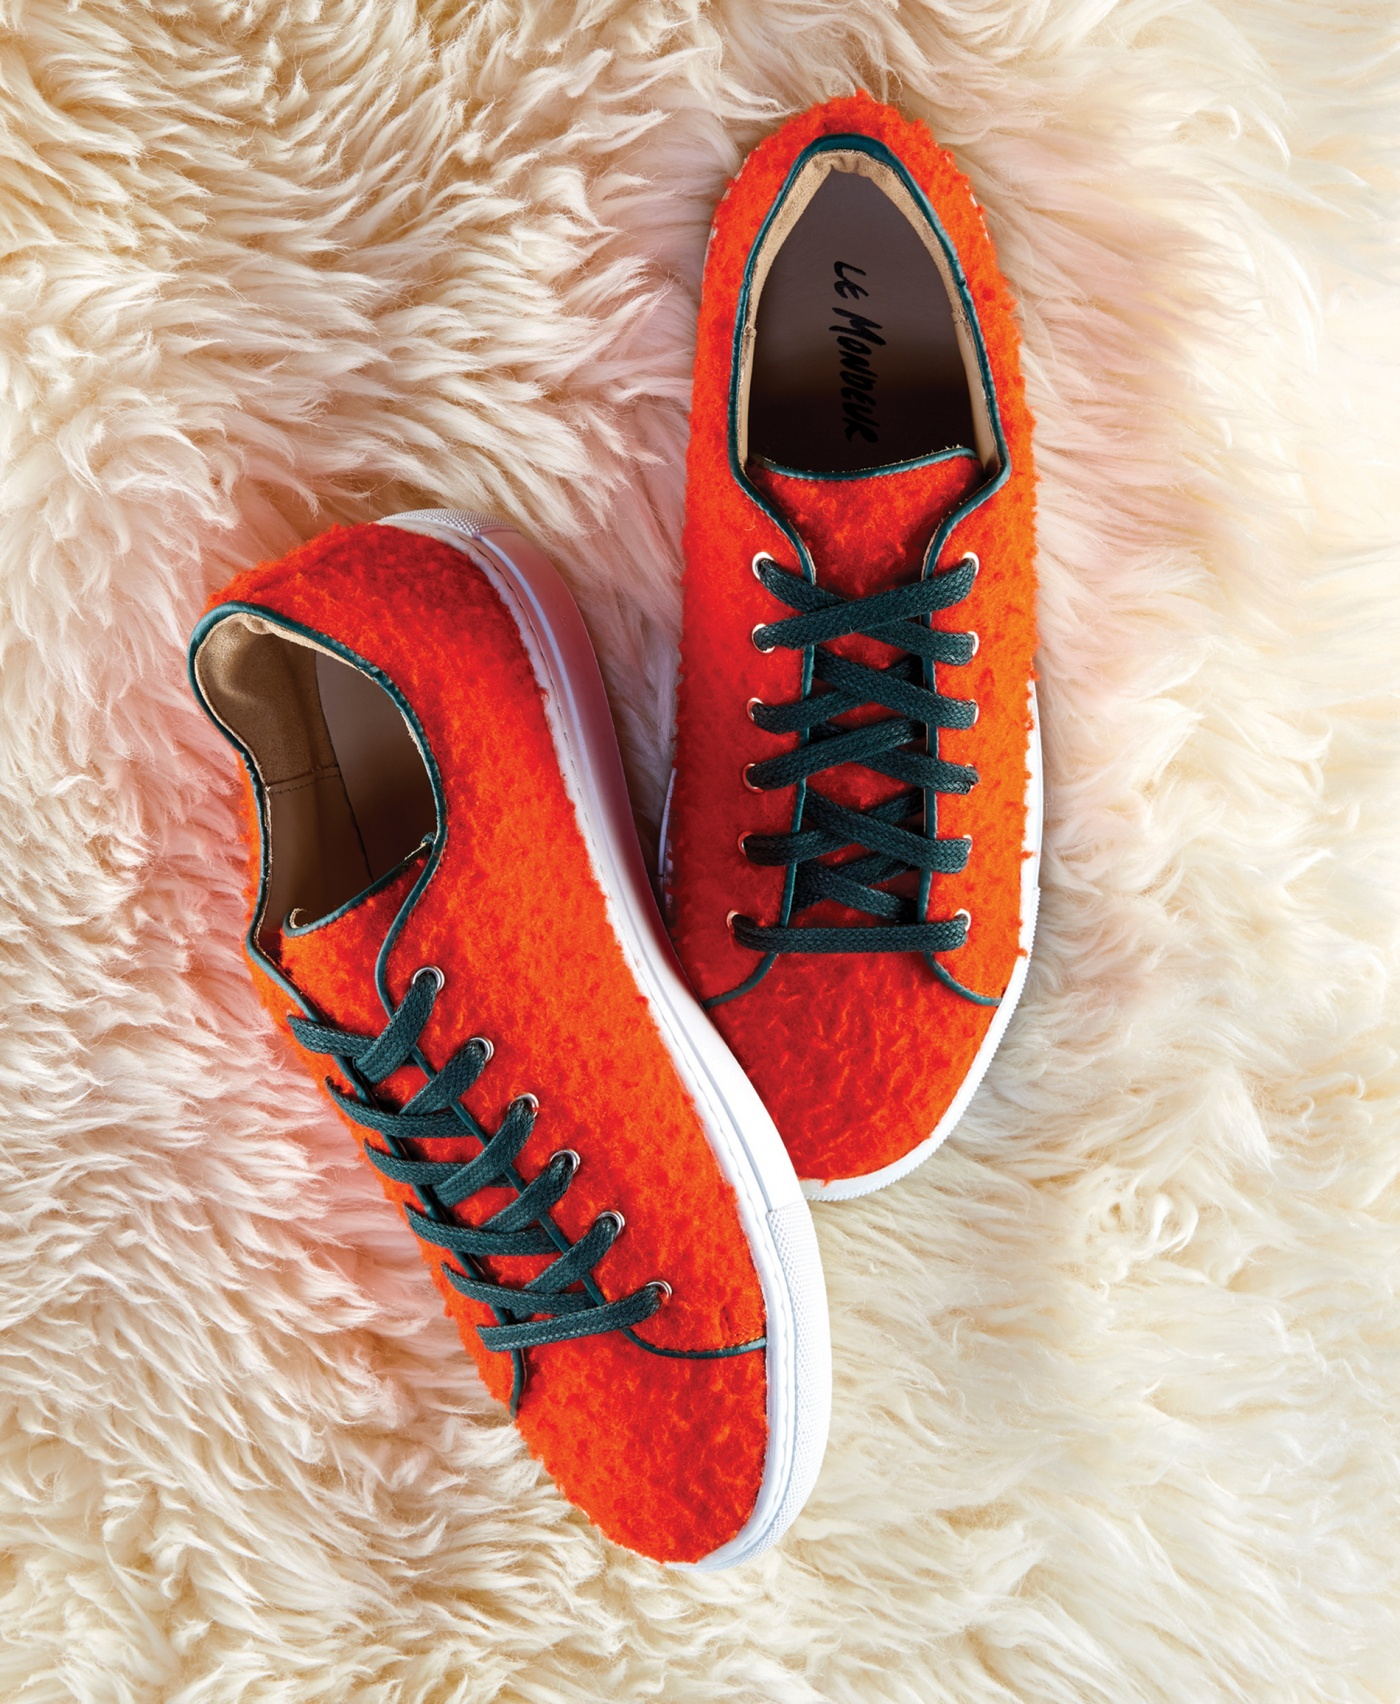 19GG: wooly sneakers